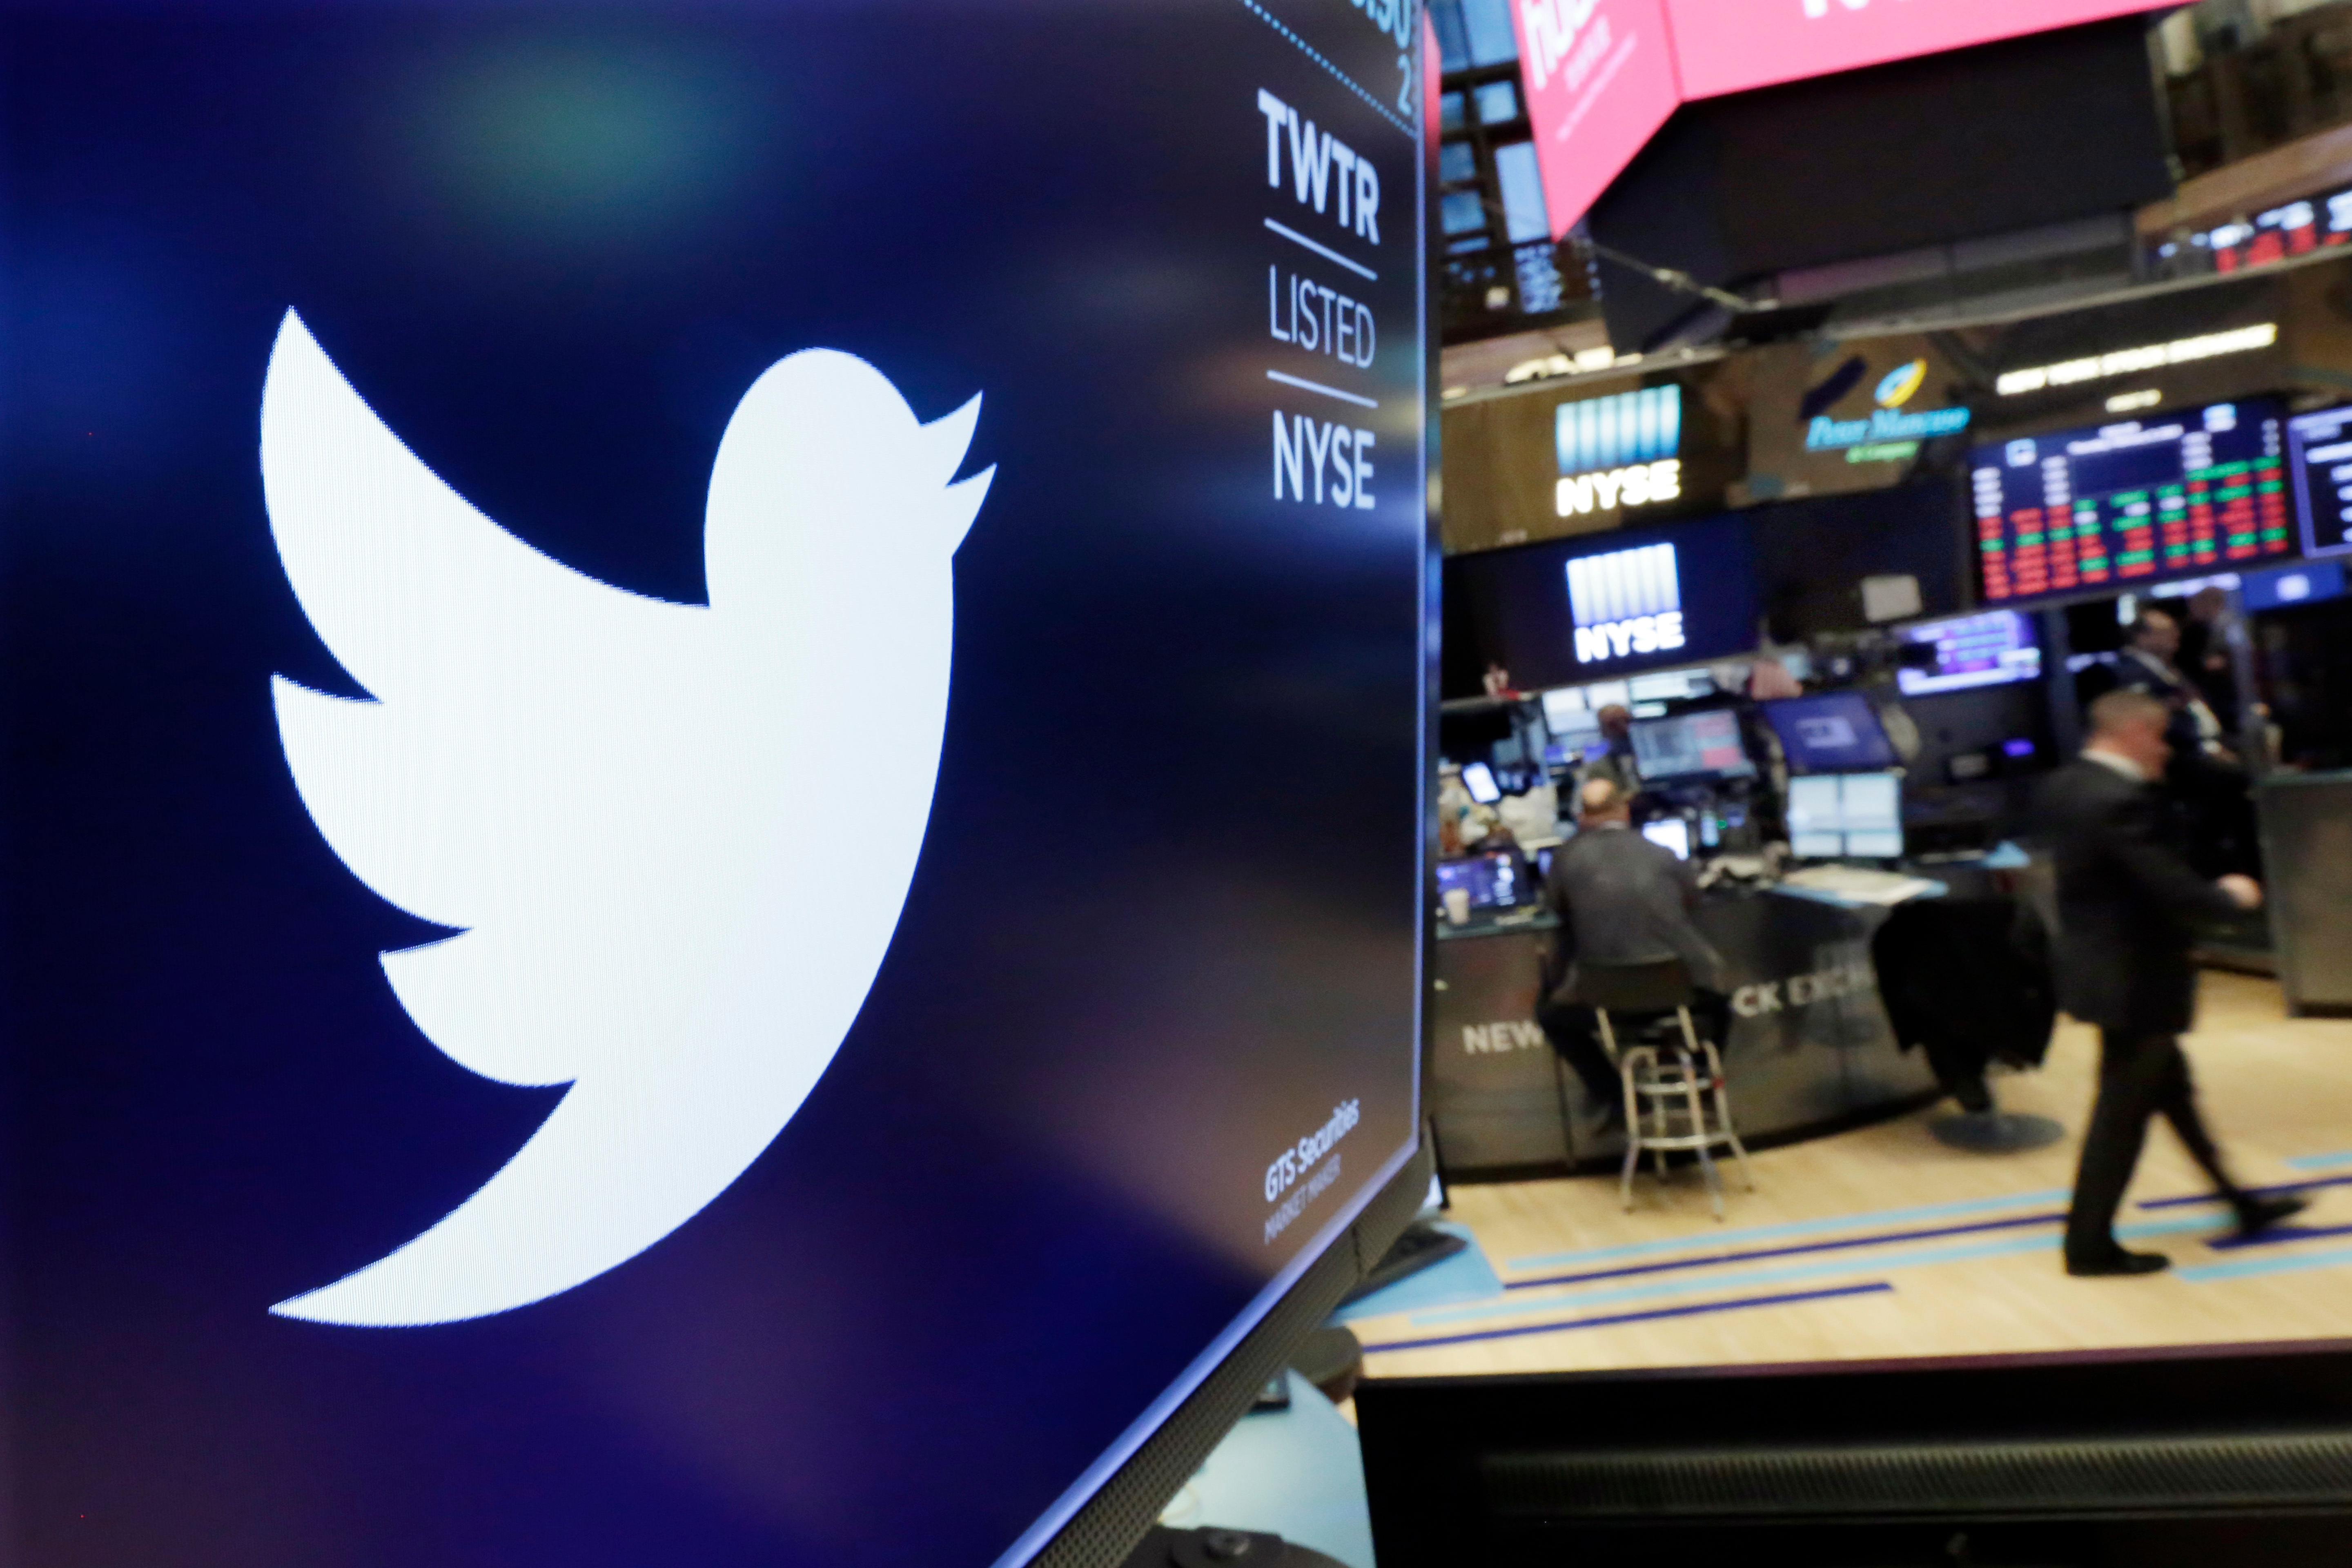 Twitter Announces Changes To Fight Misinformation Before Election